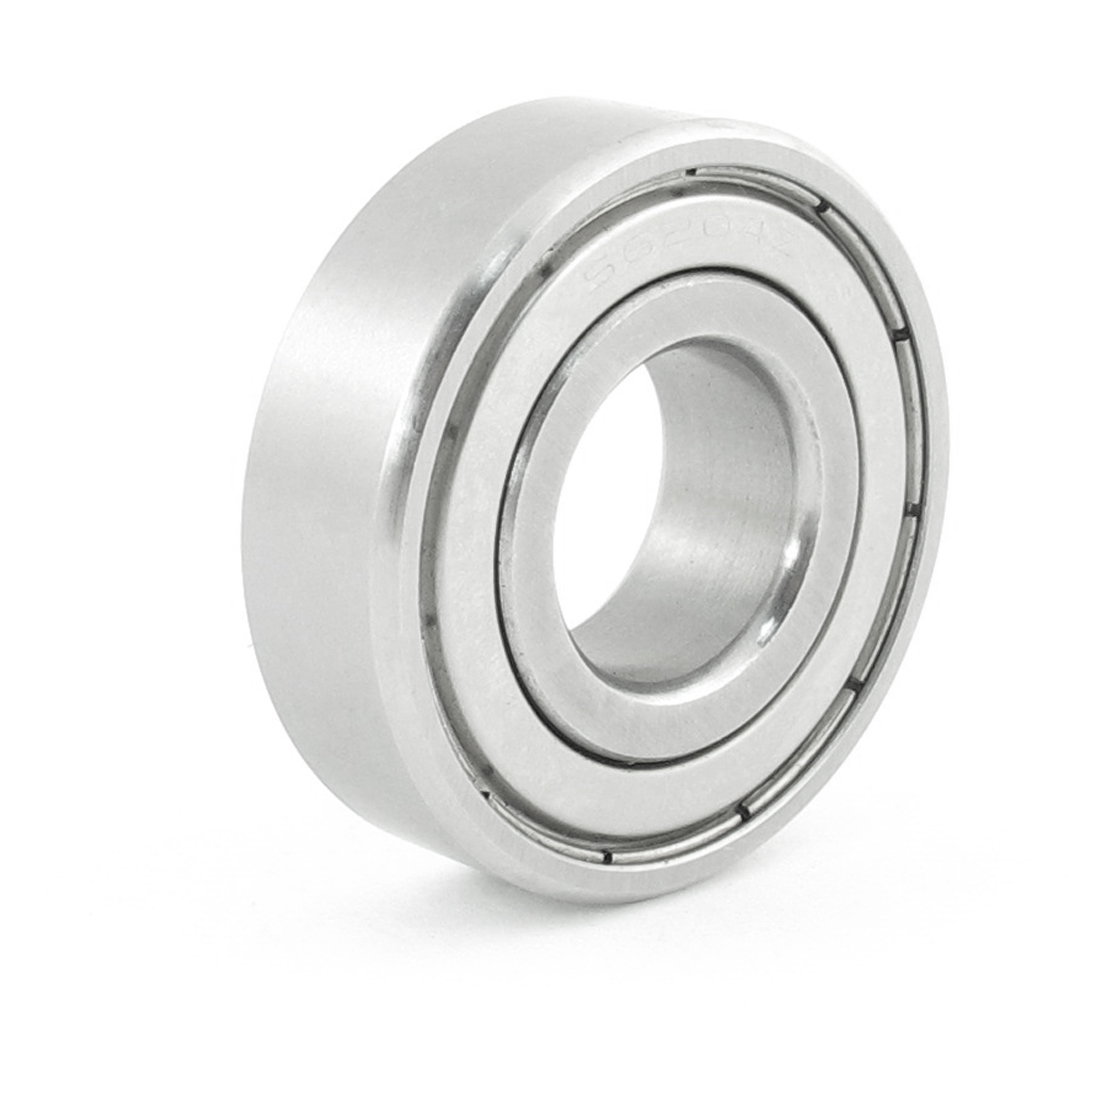 Stainless Steel 47mm x 20mm x 14mm Sealed Deep Groove Ball Bearing